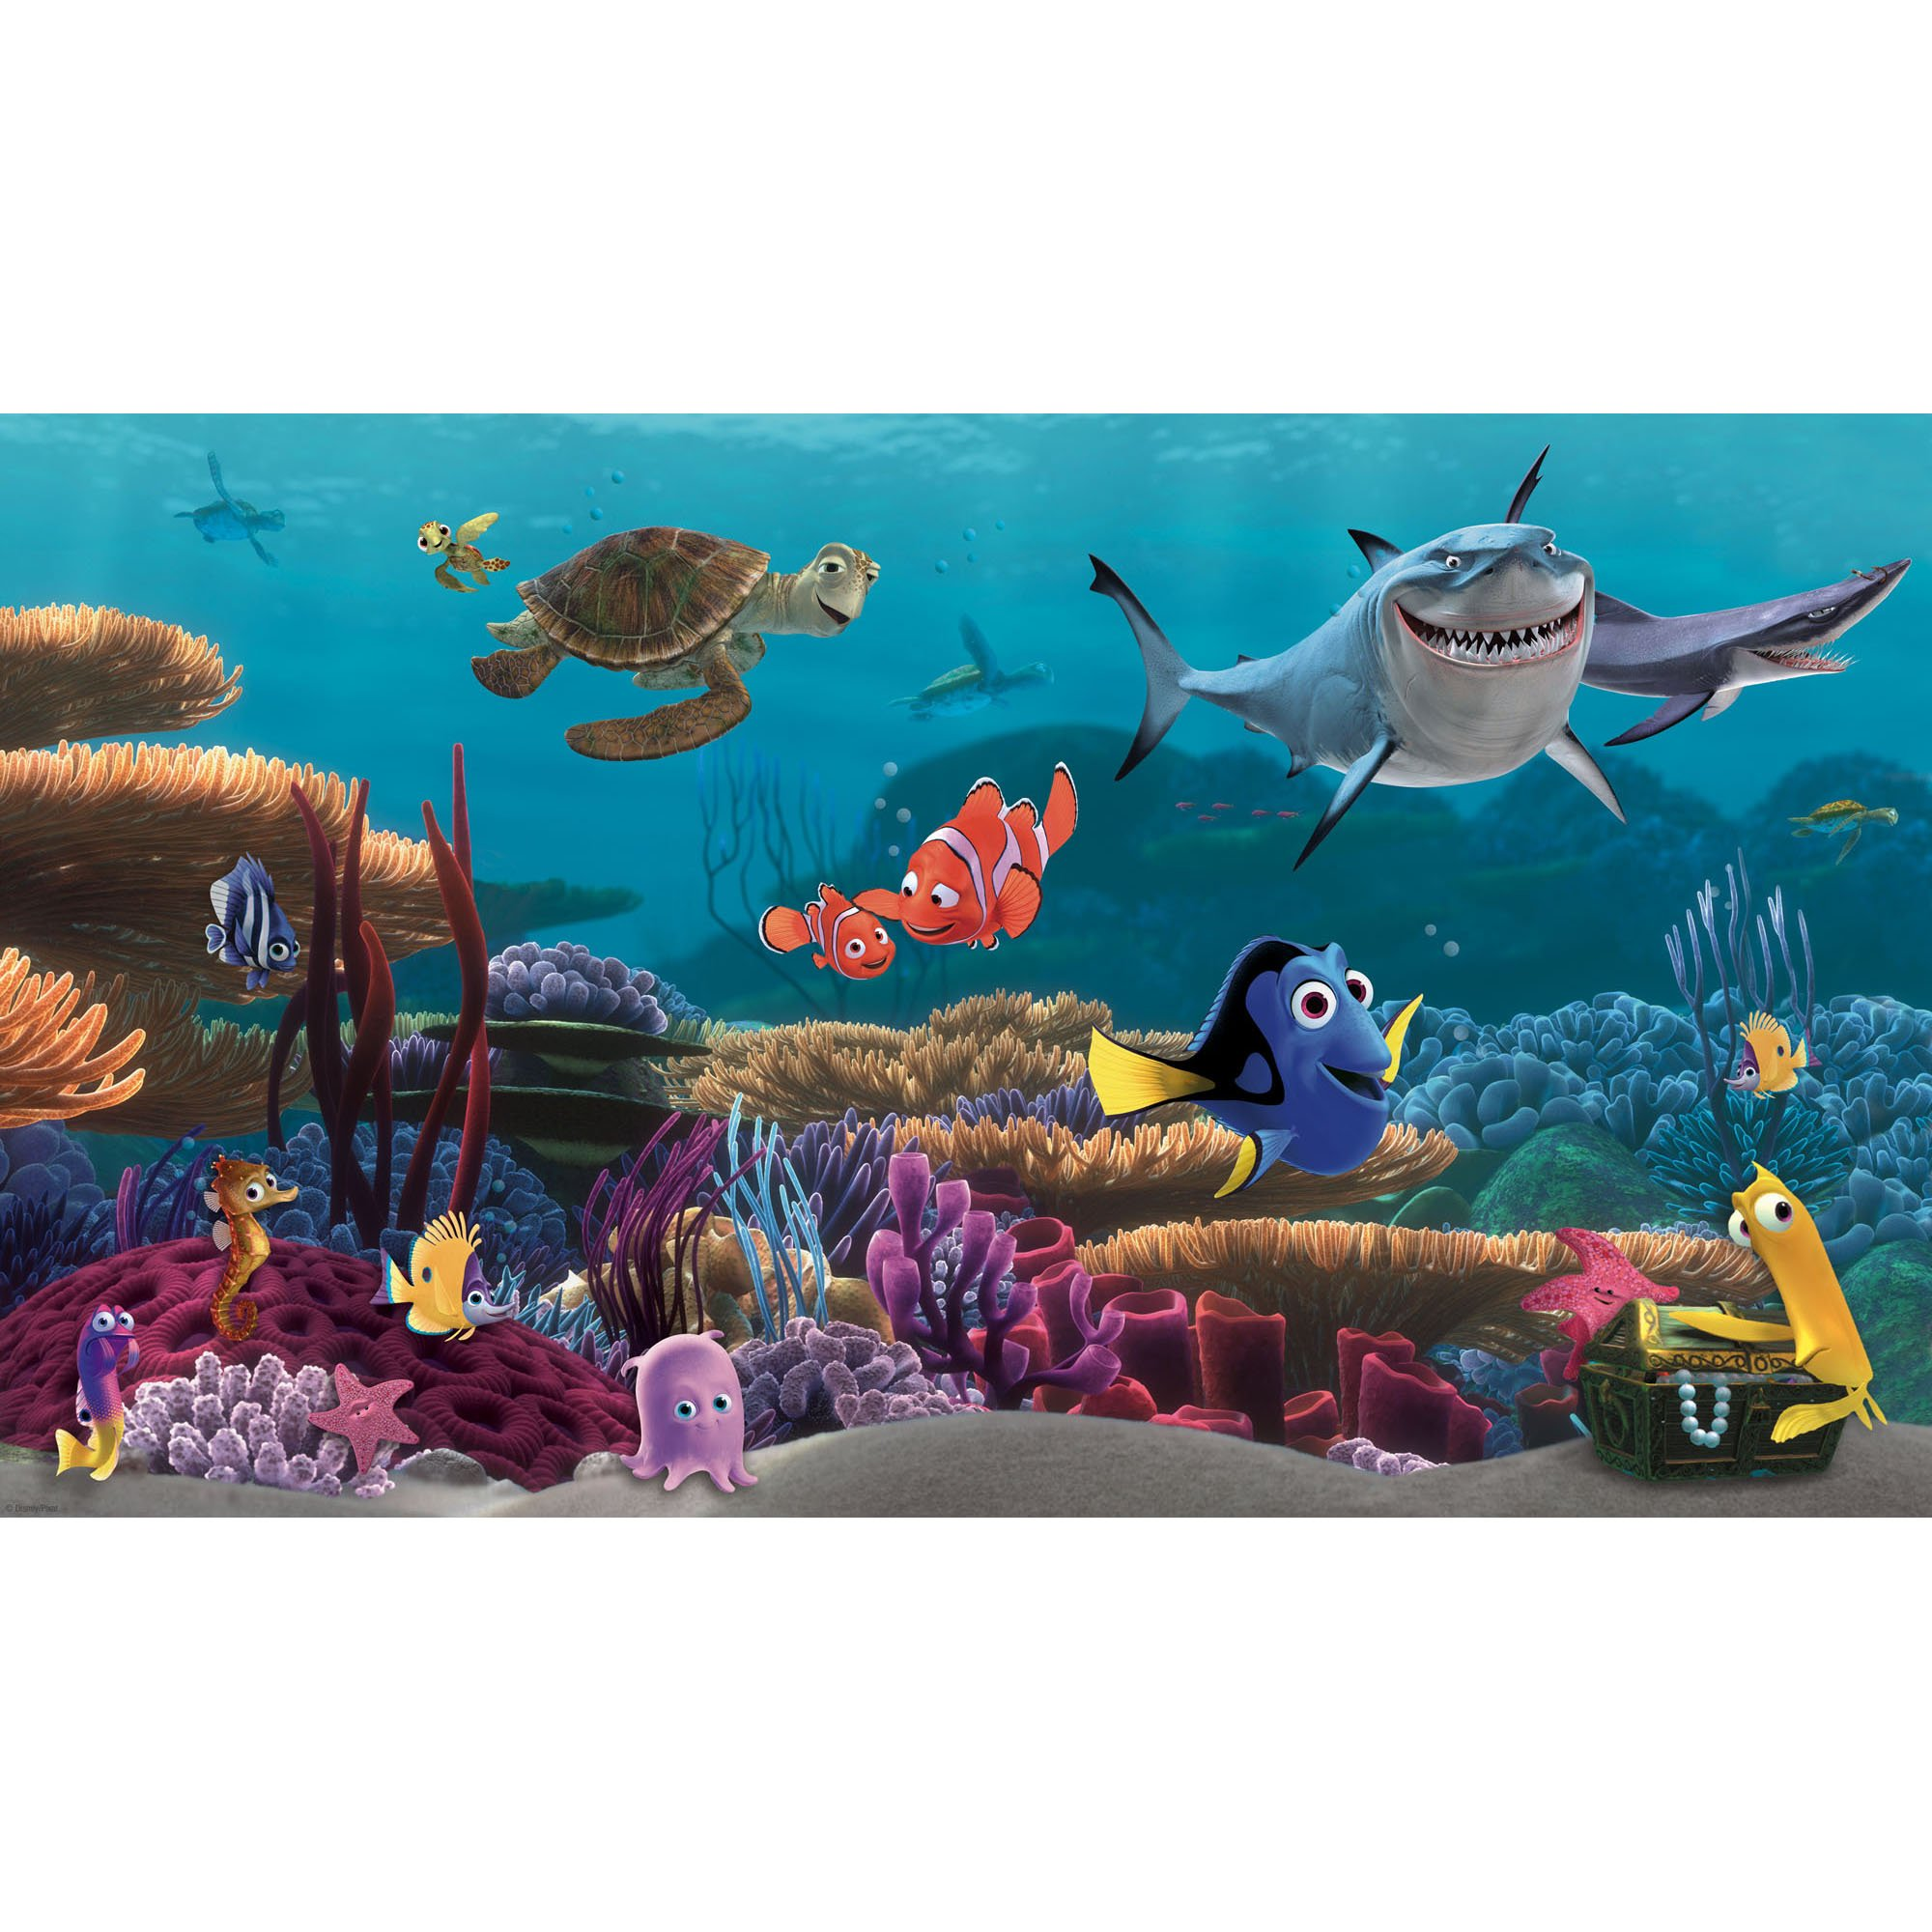 RoomMates Finding Nemo Prepasted, Removable Wall Mural - 6' X 10.5' by RoomMates (Image #1)